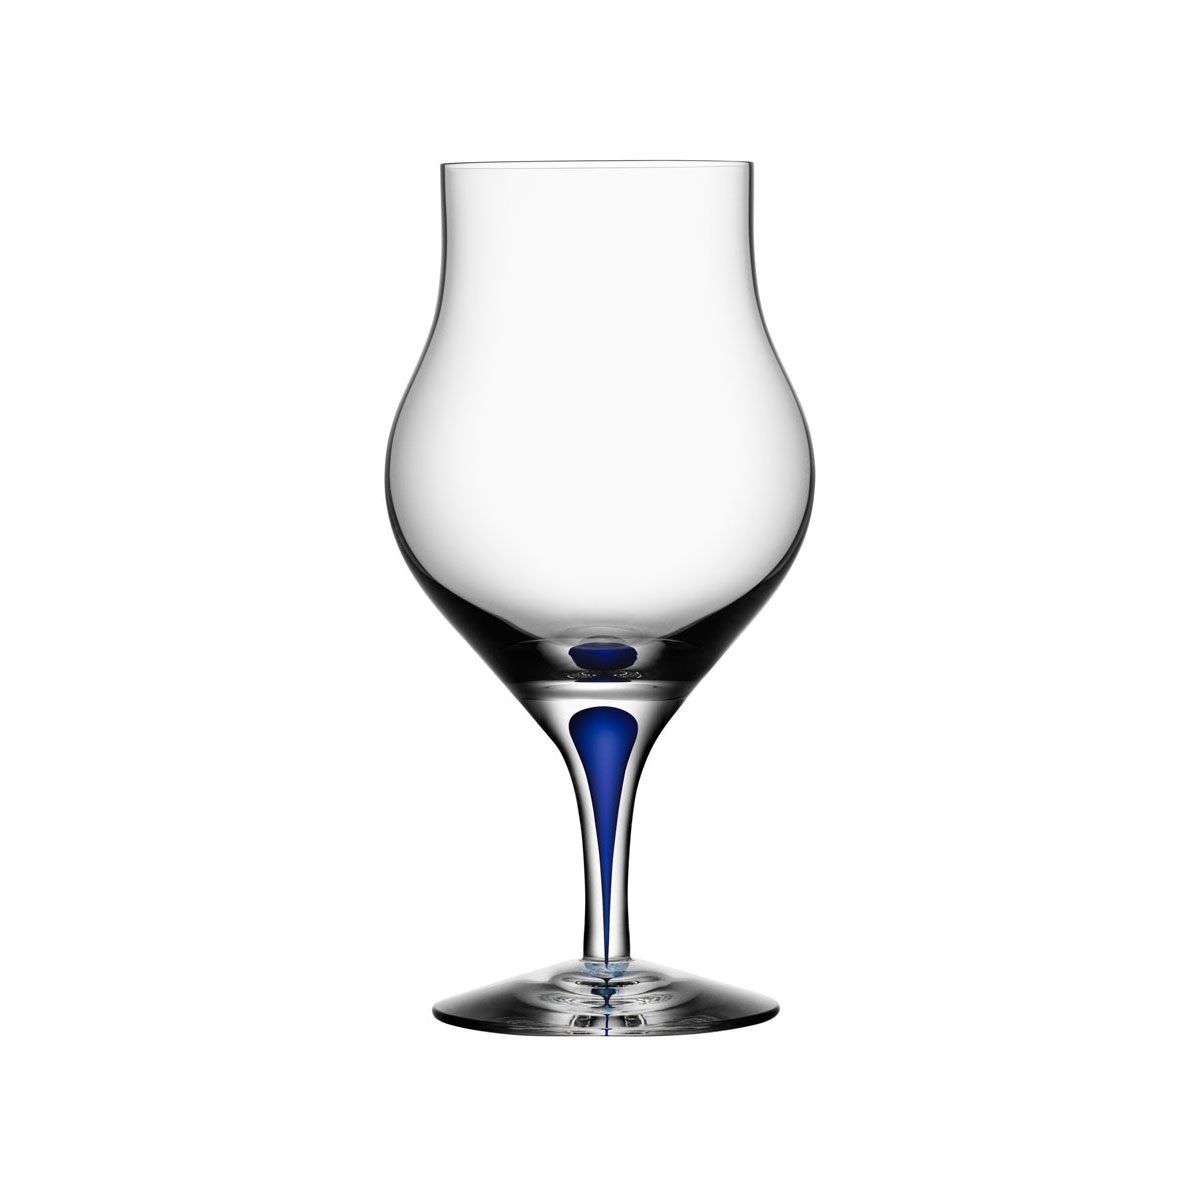 Orrefors Crystal, Intermezzo Blue Crystal Brandy Snifter, Single